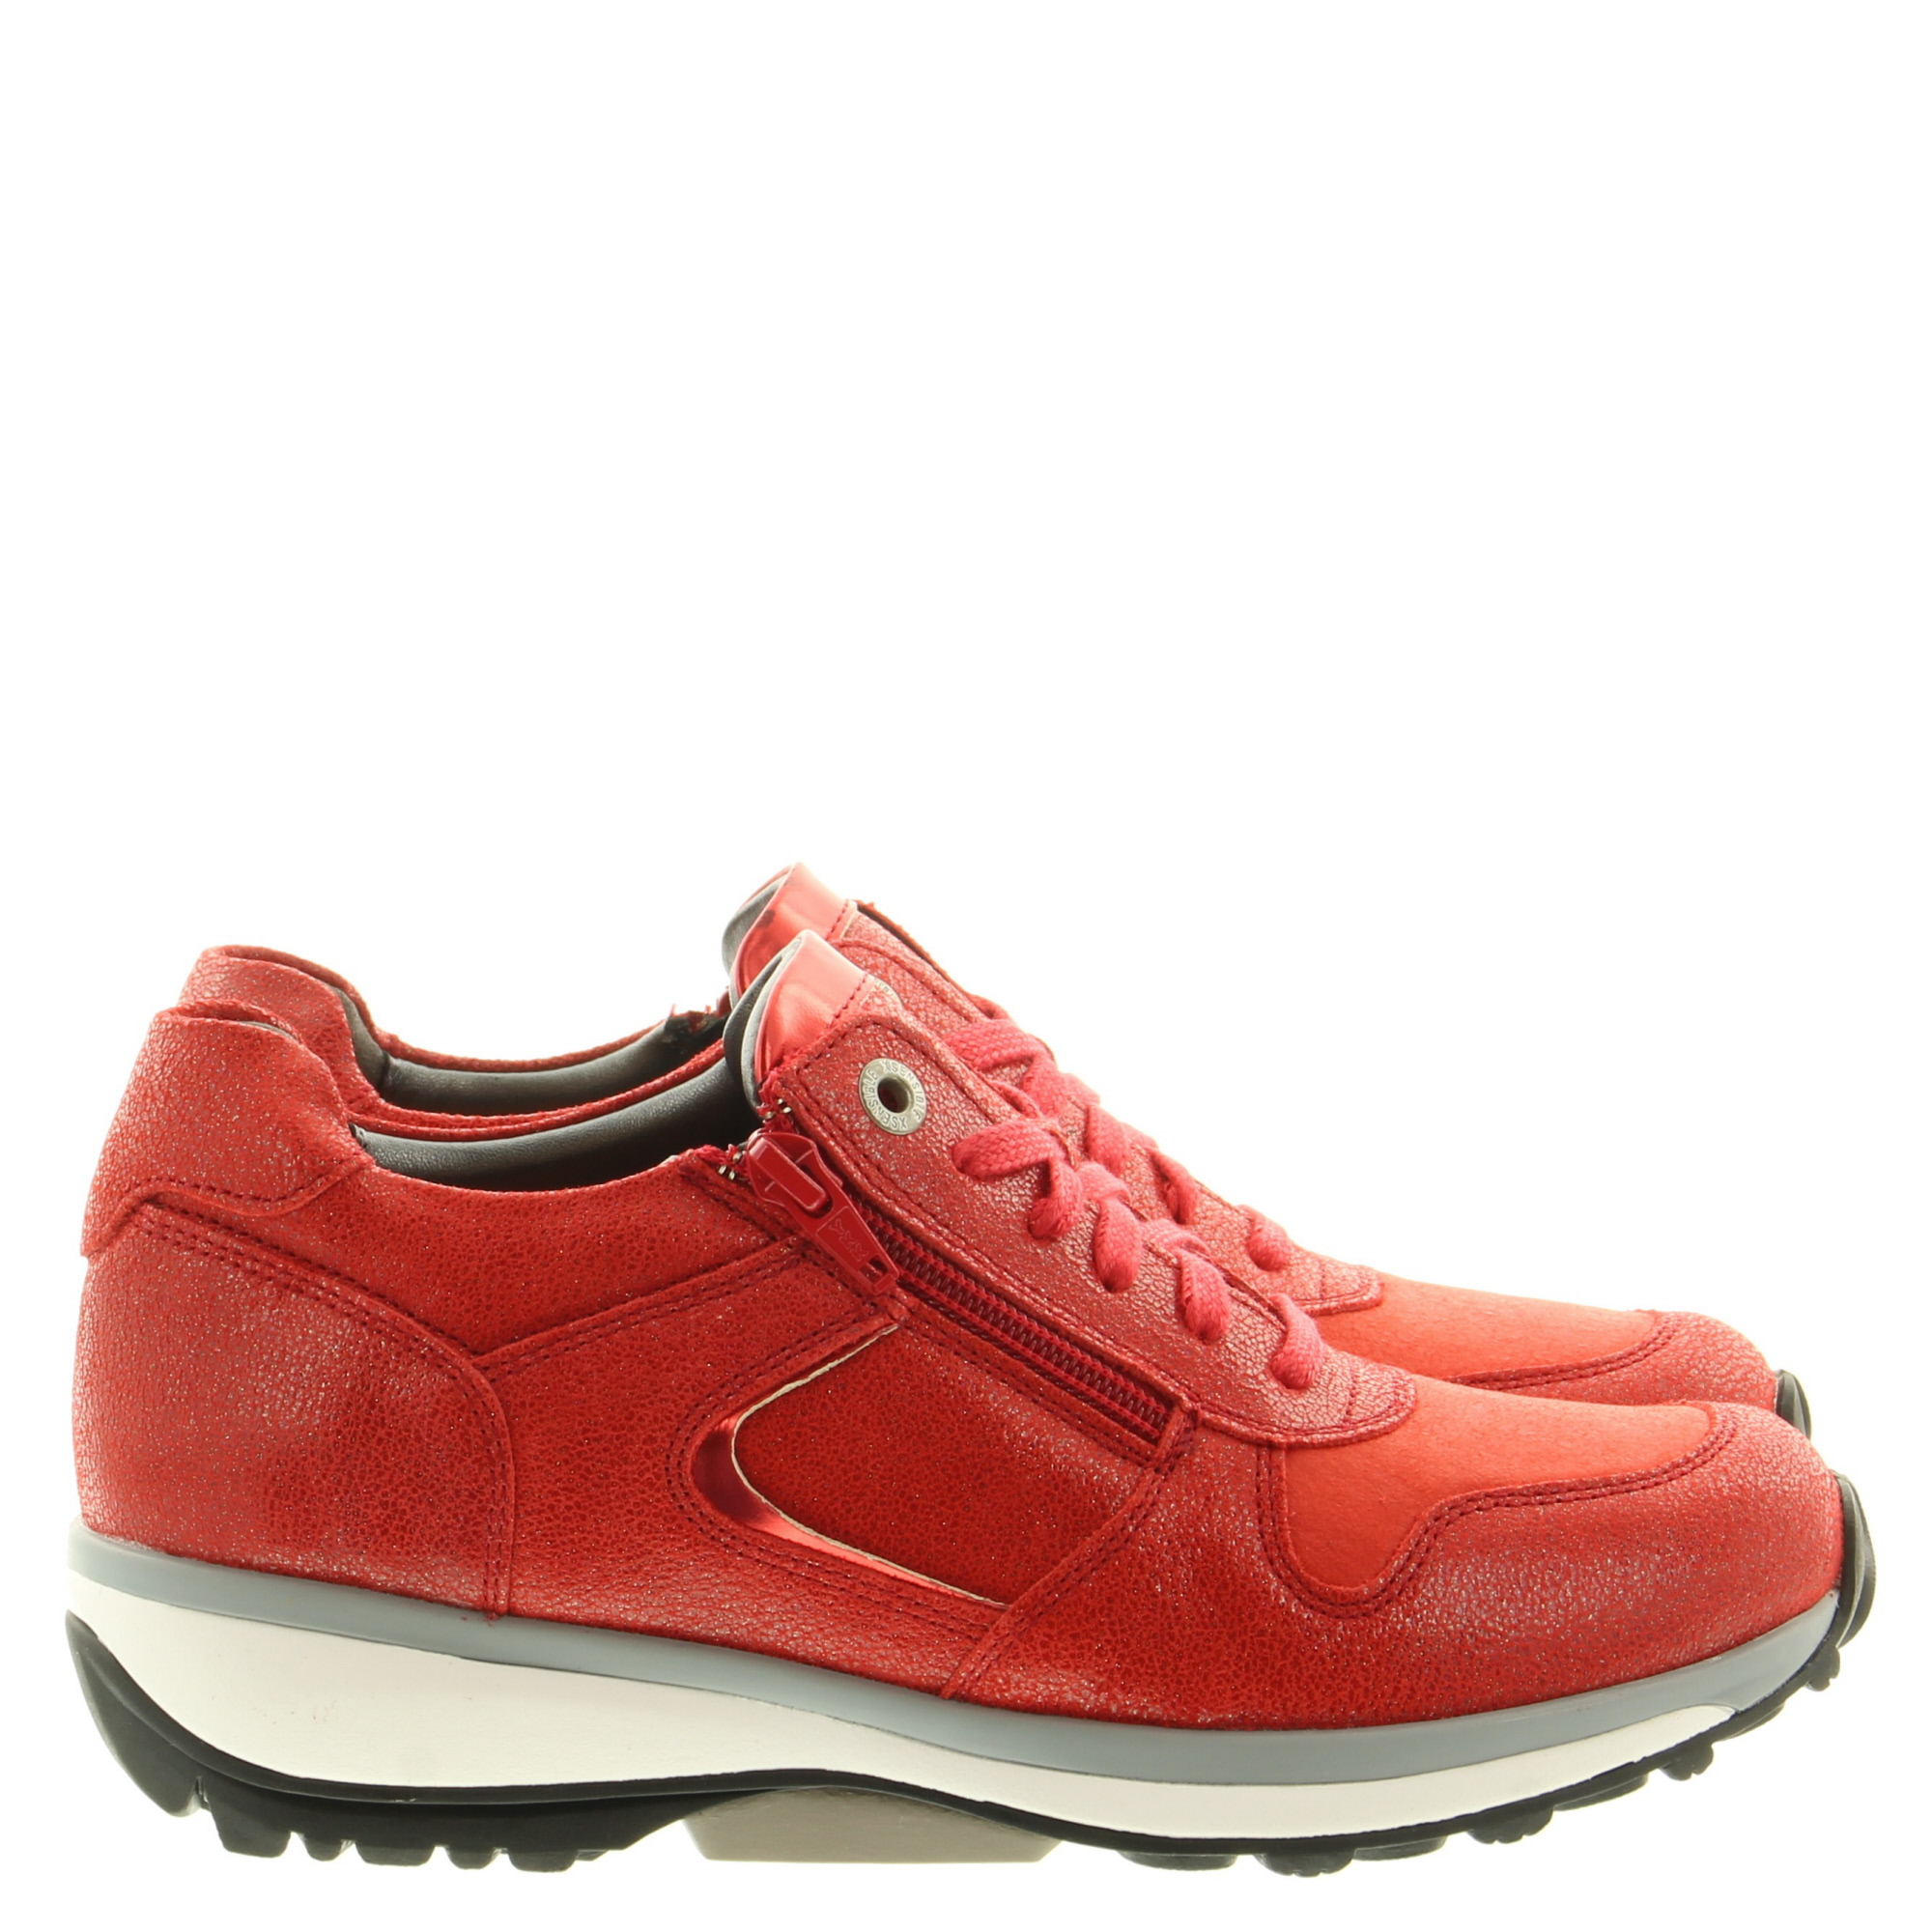 Xsensible 30042.2.723 Jersey Coral Red